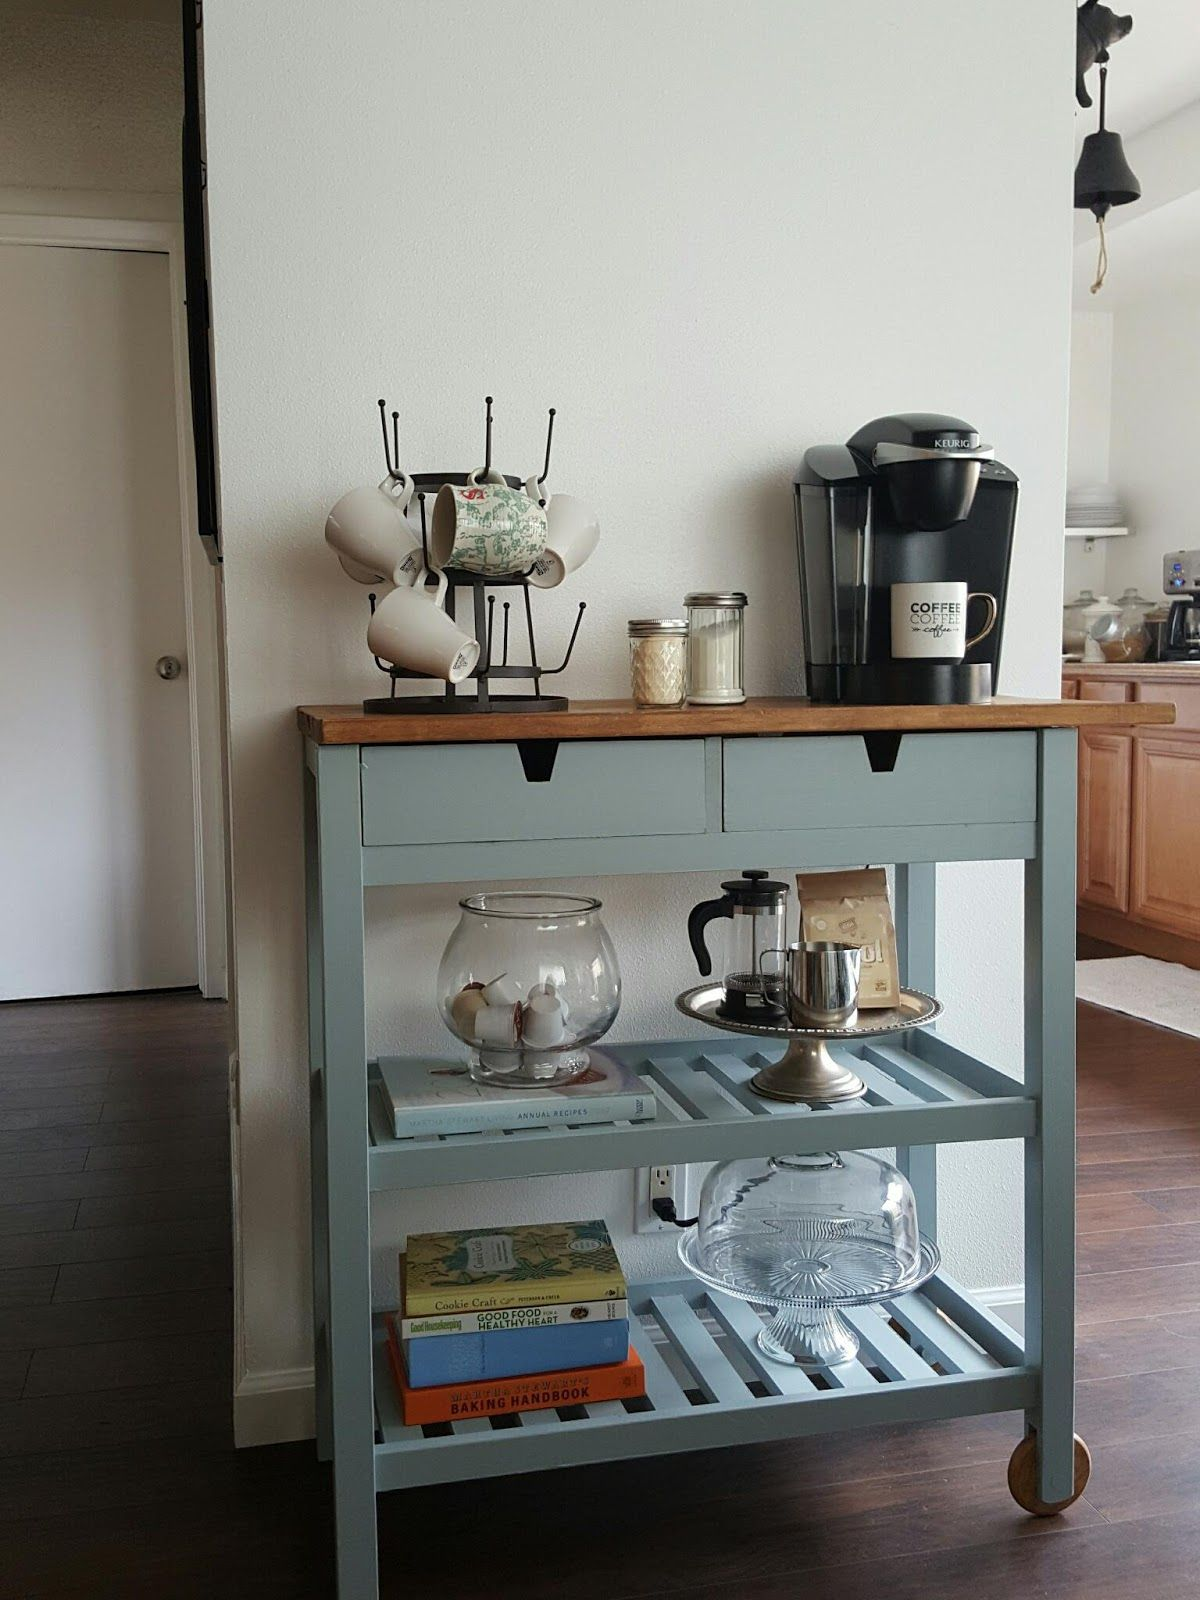 Charmed Crown Blog: DIY Ikea Coffee Cart | Home Decor | Pinterest ...